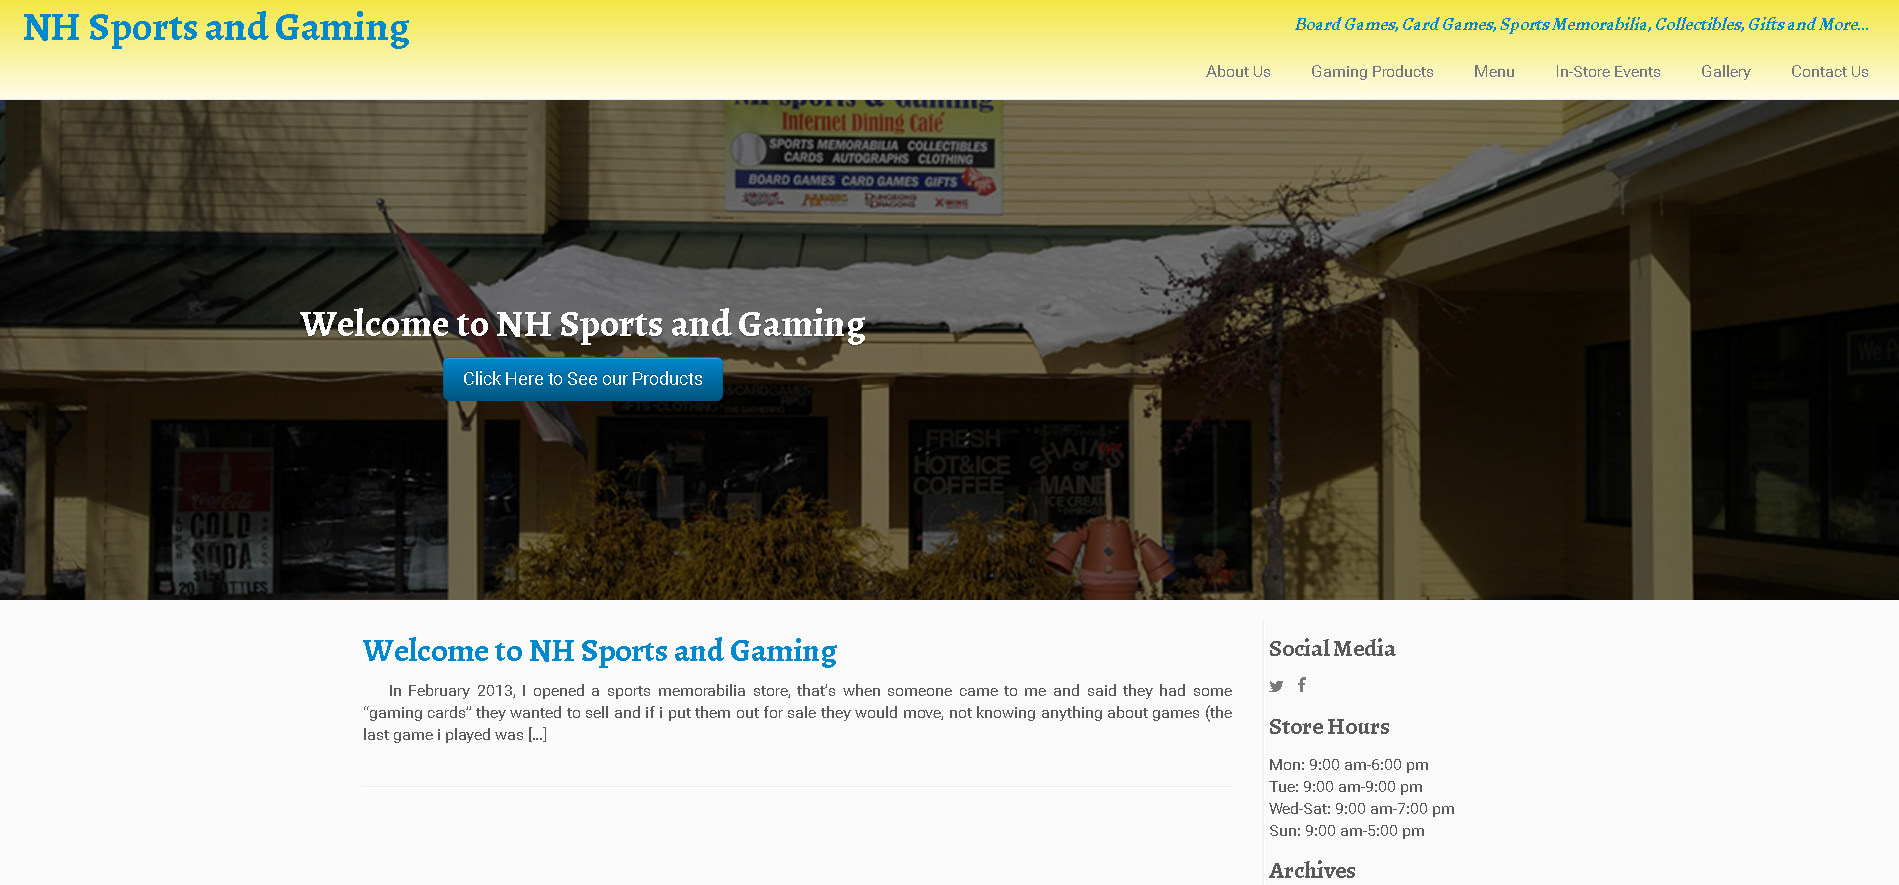 NH Sports and Gaming